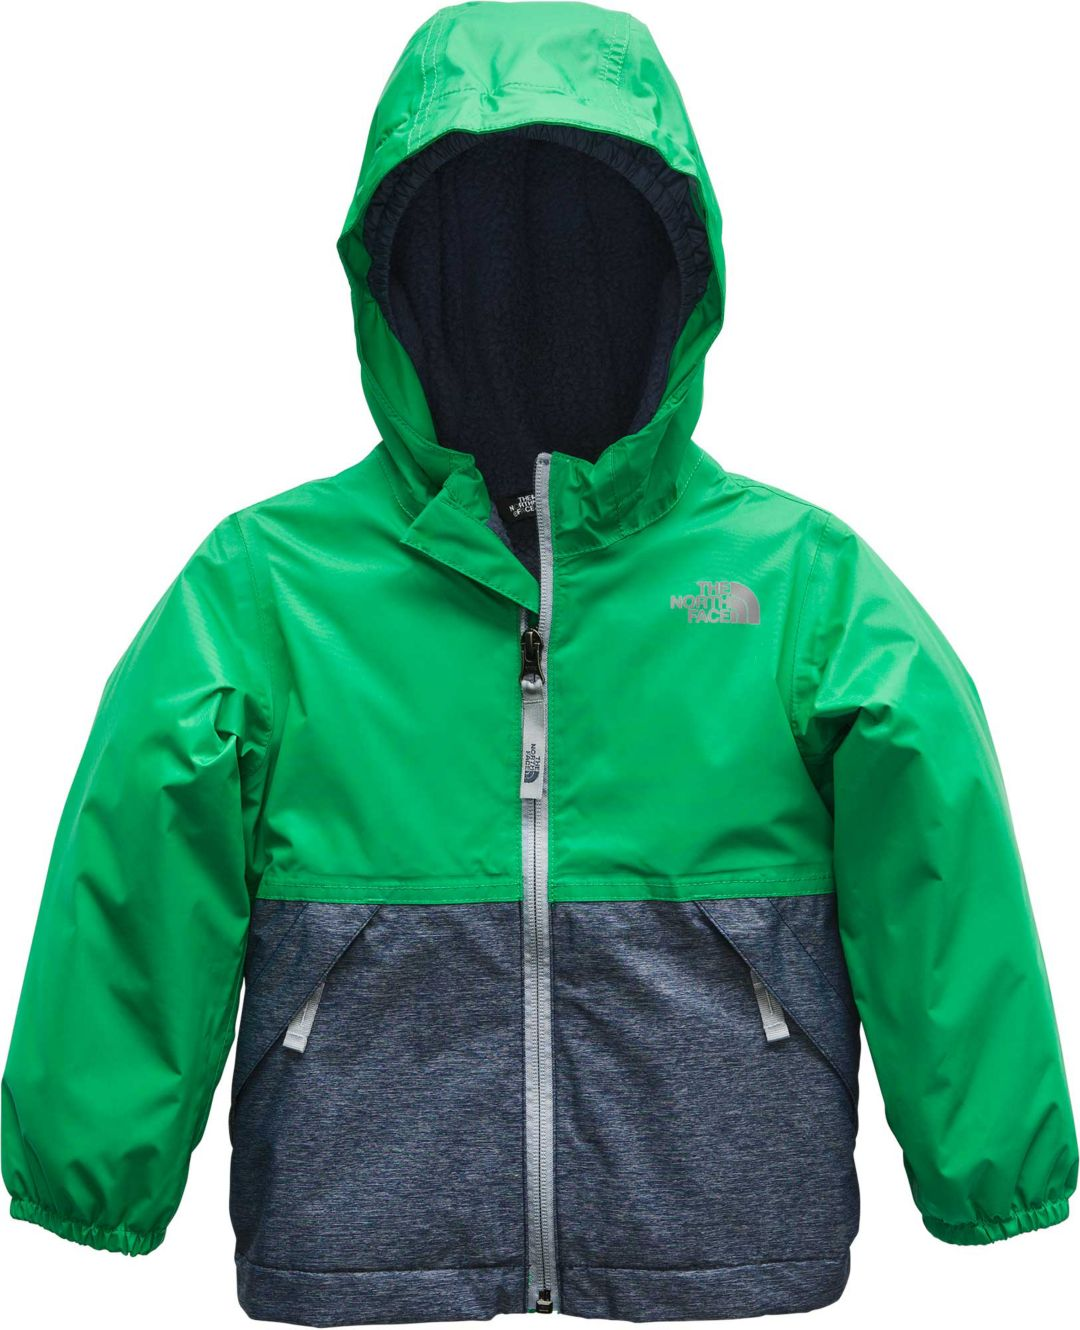 5fdb9038b The North Face Toddler Boys' Warm Storm Rain Jacket | Field & Stream